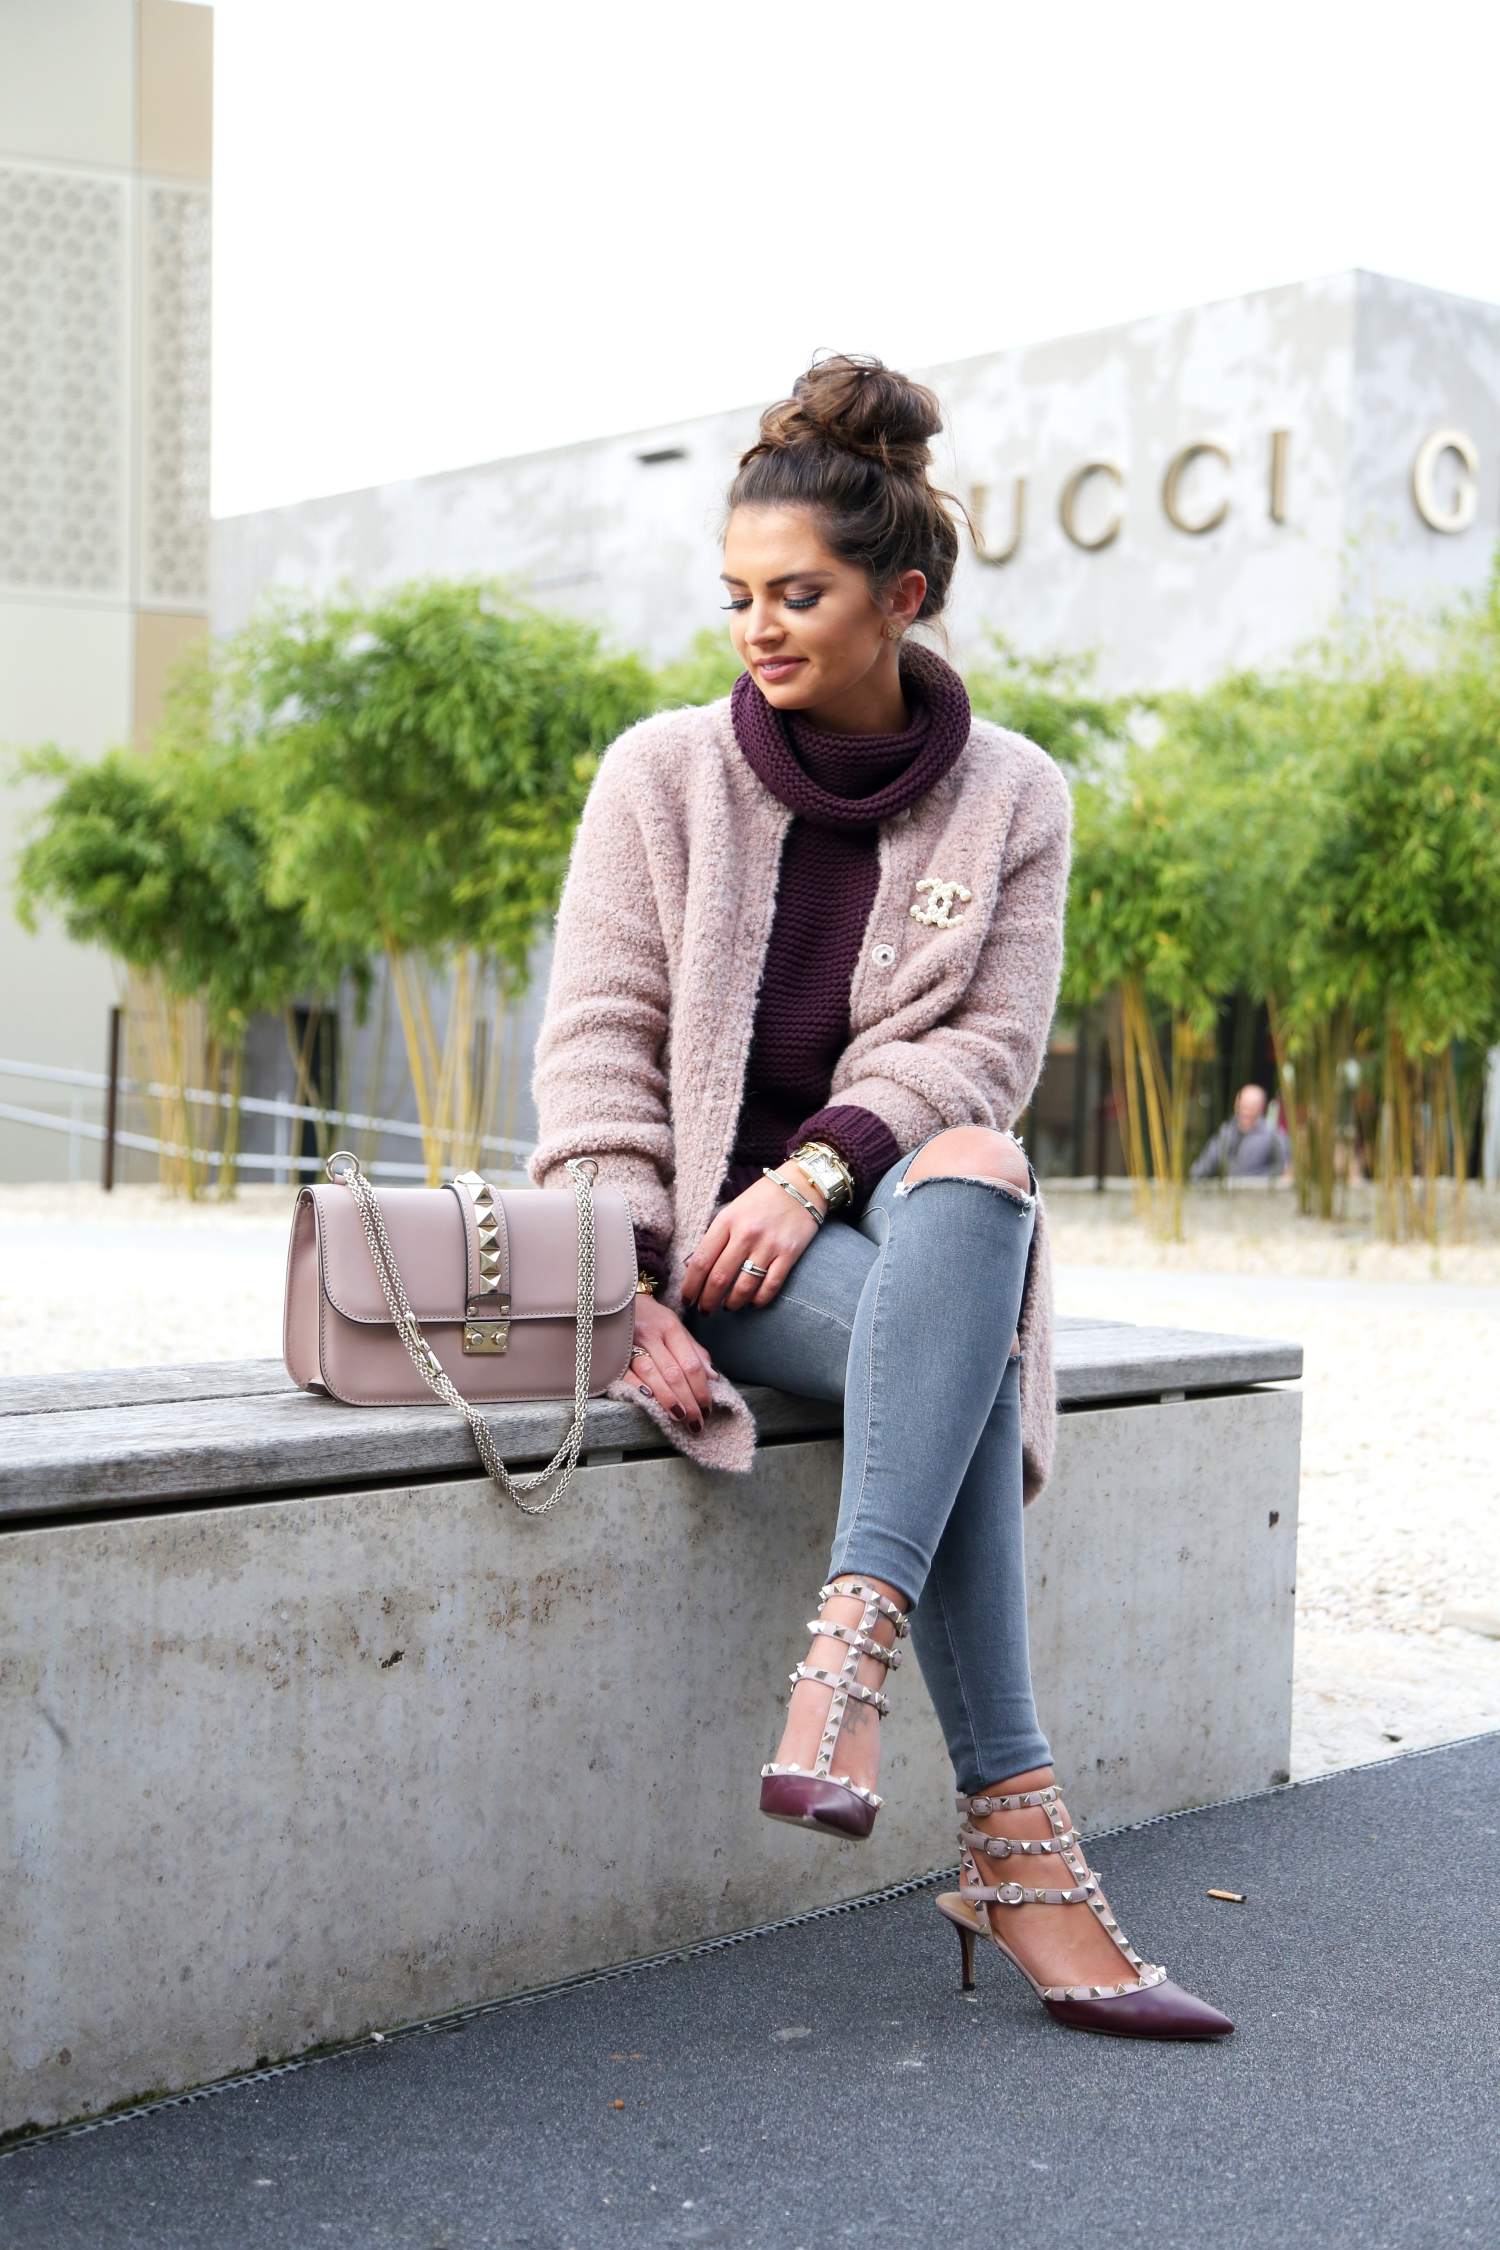 outfit-fall-autumn-fashionhippieloves-fashion-blogger-germany